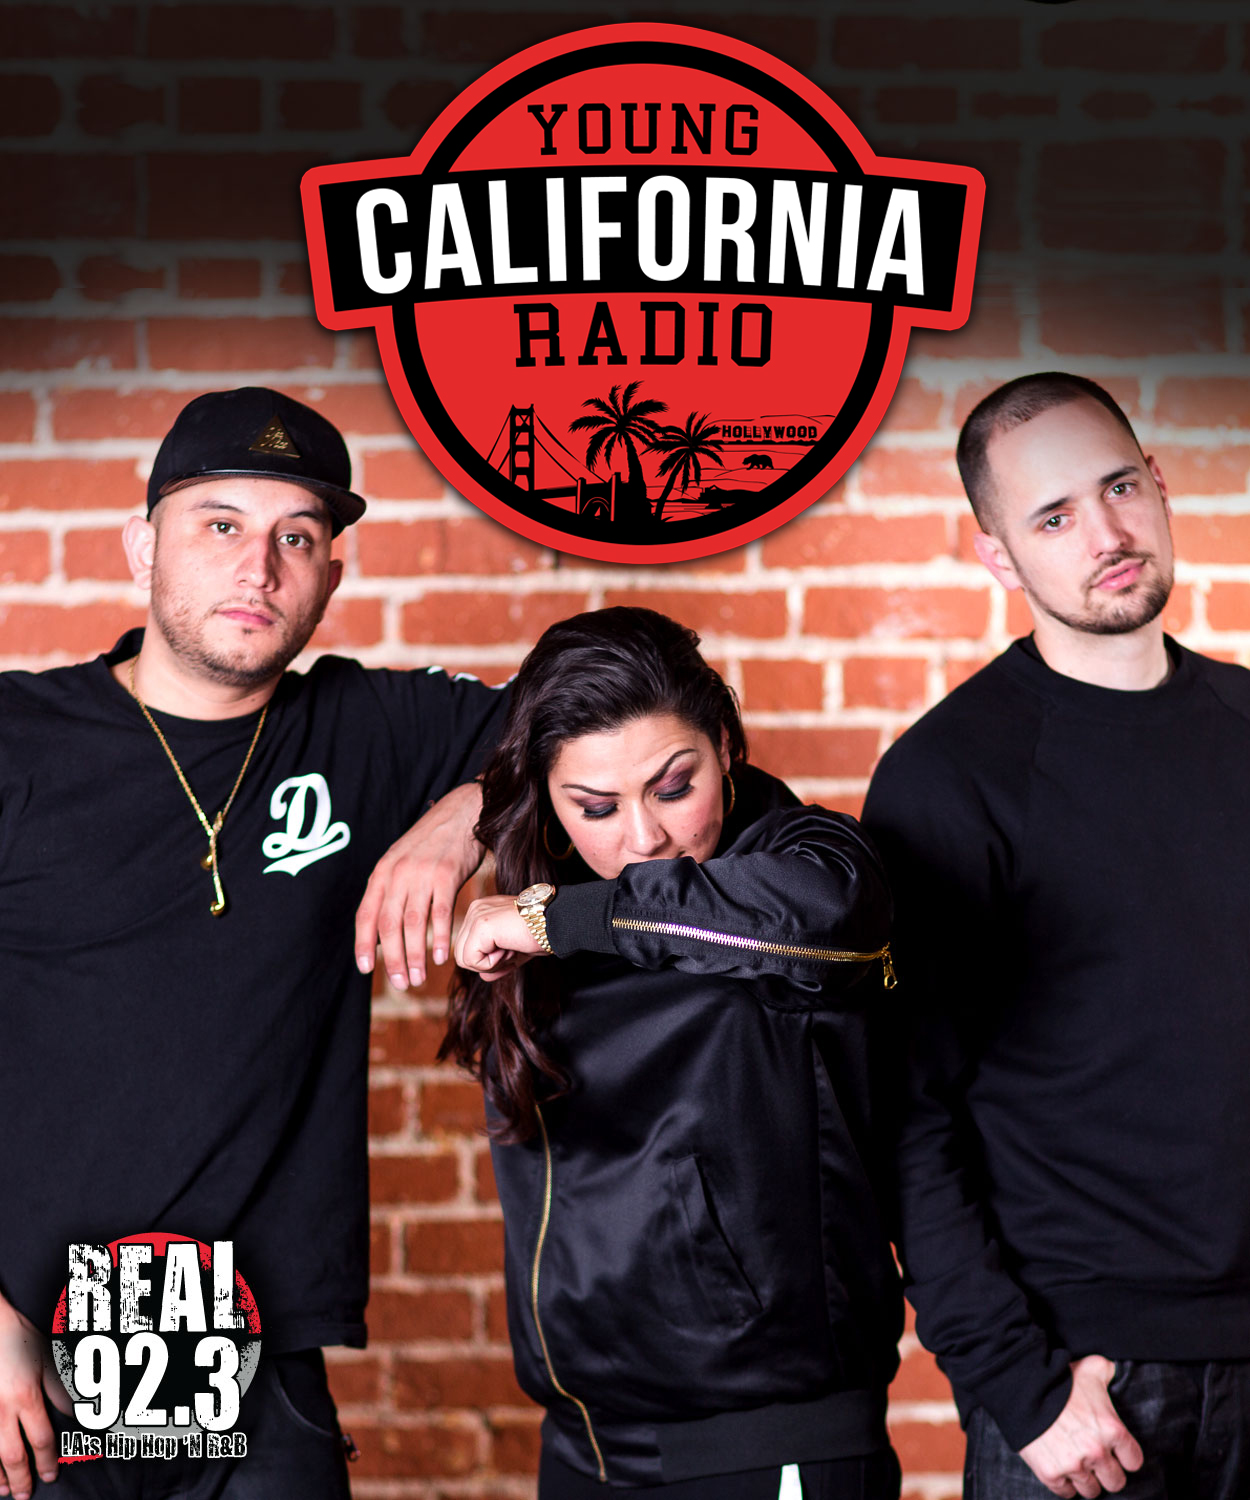 youngcaliforniaradio-2r